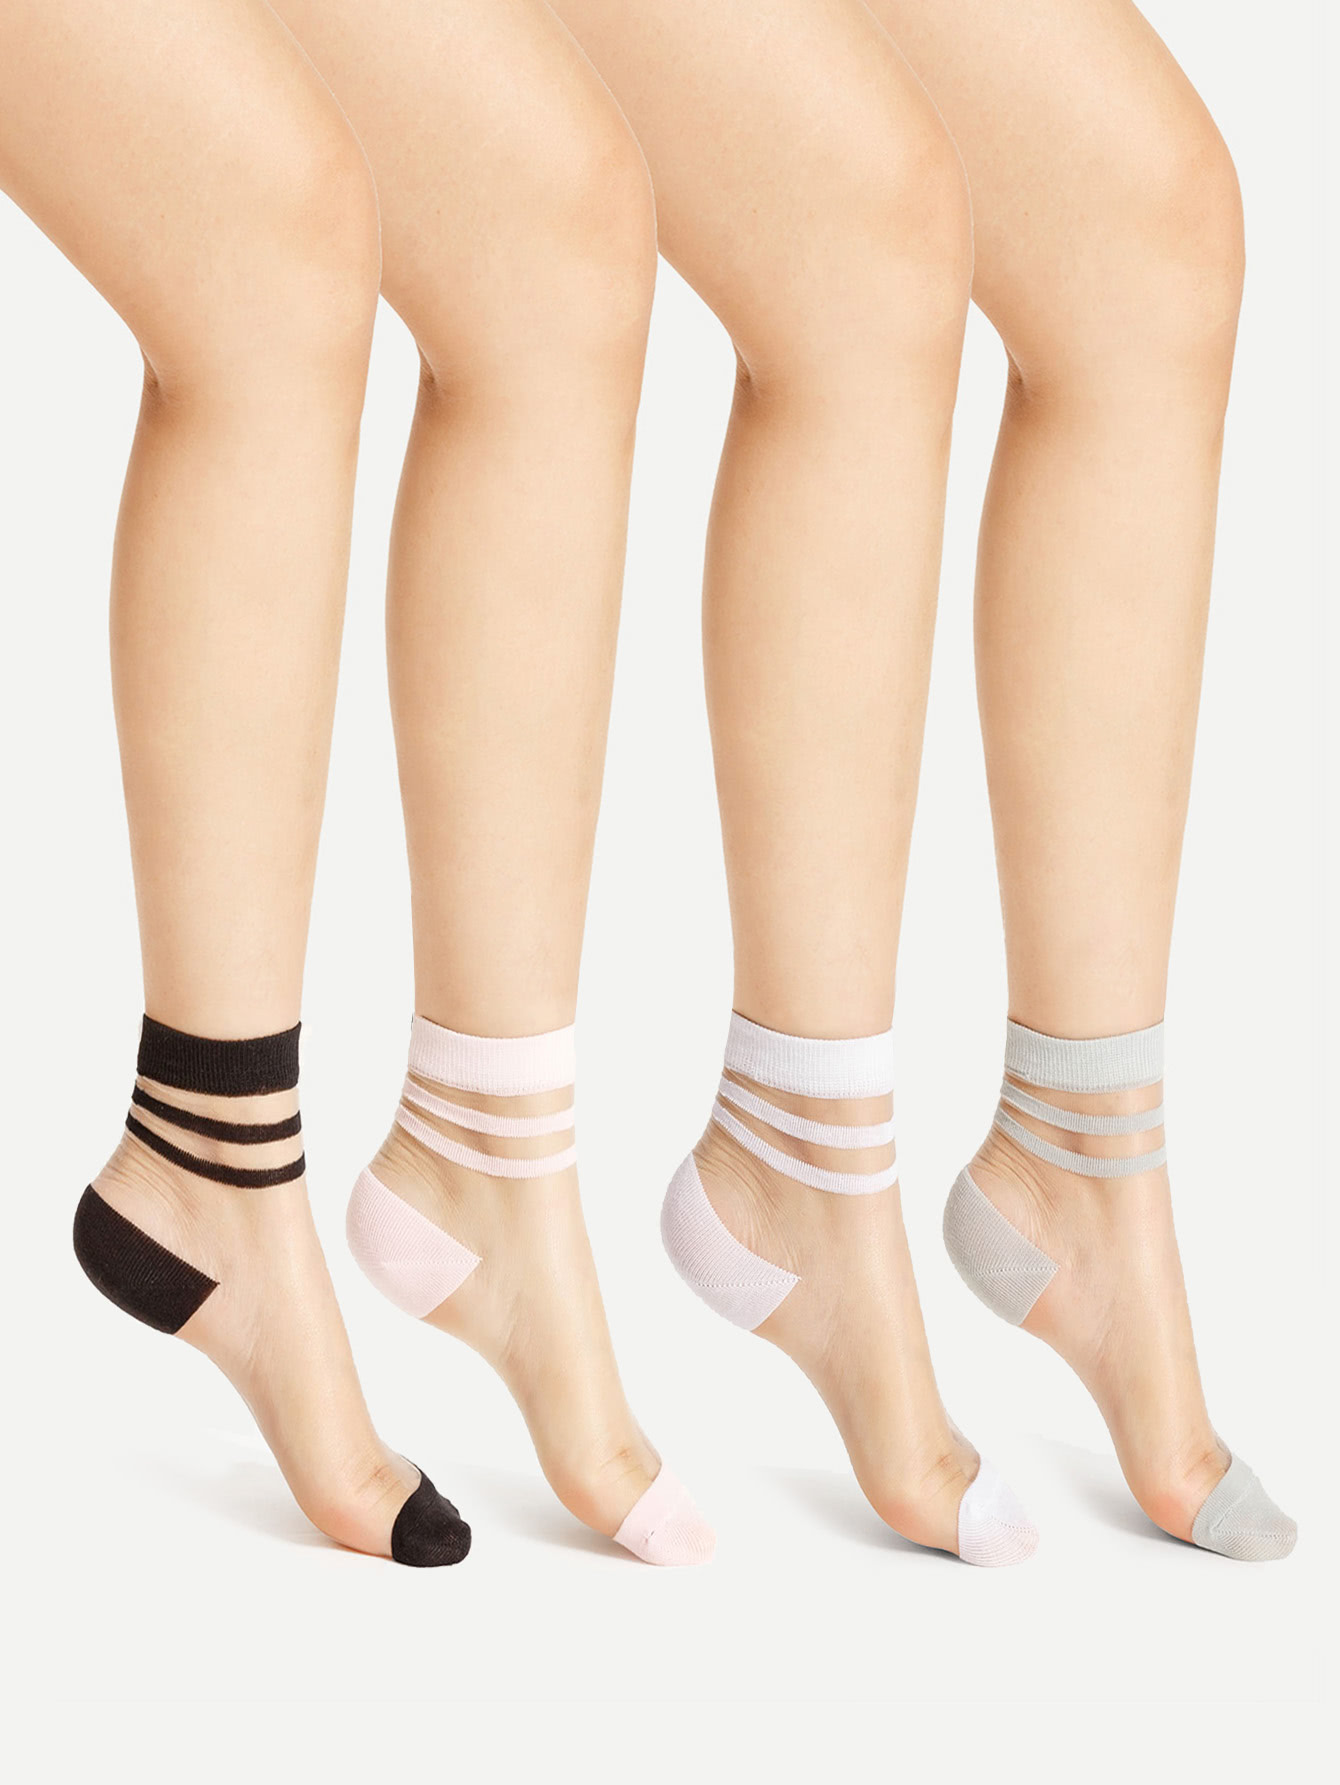 Фото Striped Cuff Sheer Ankle Socks 4pairs. Купить с доставкой